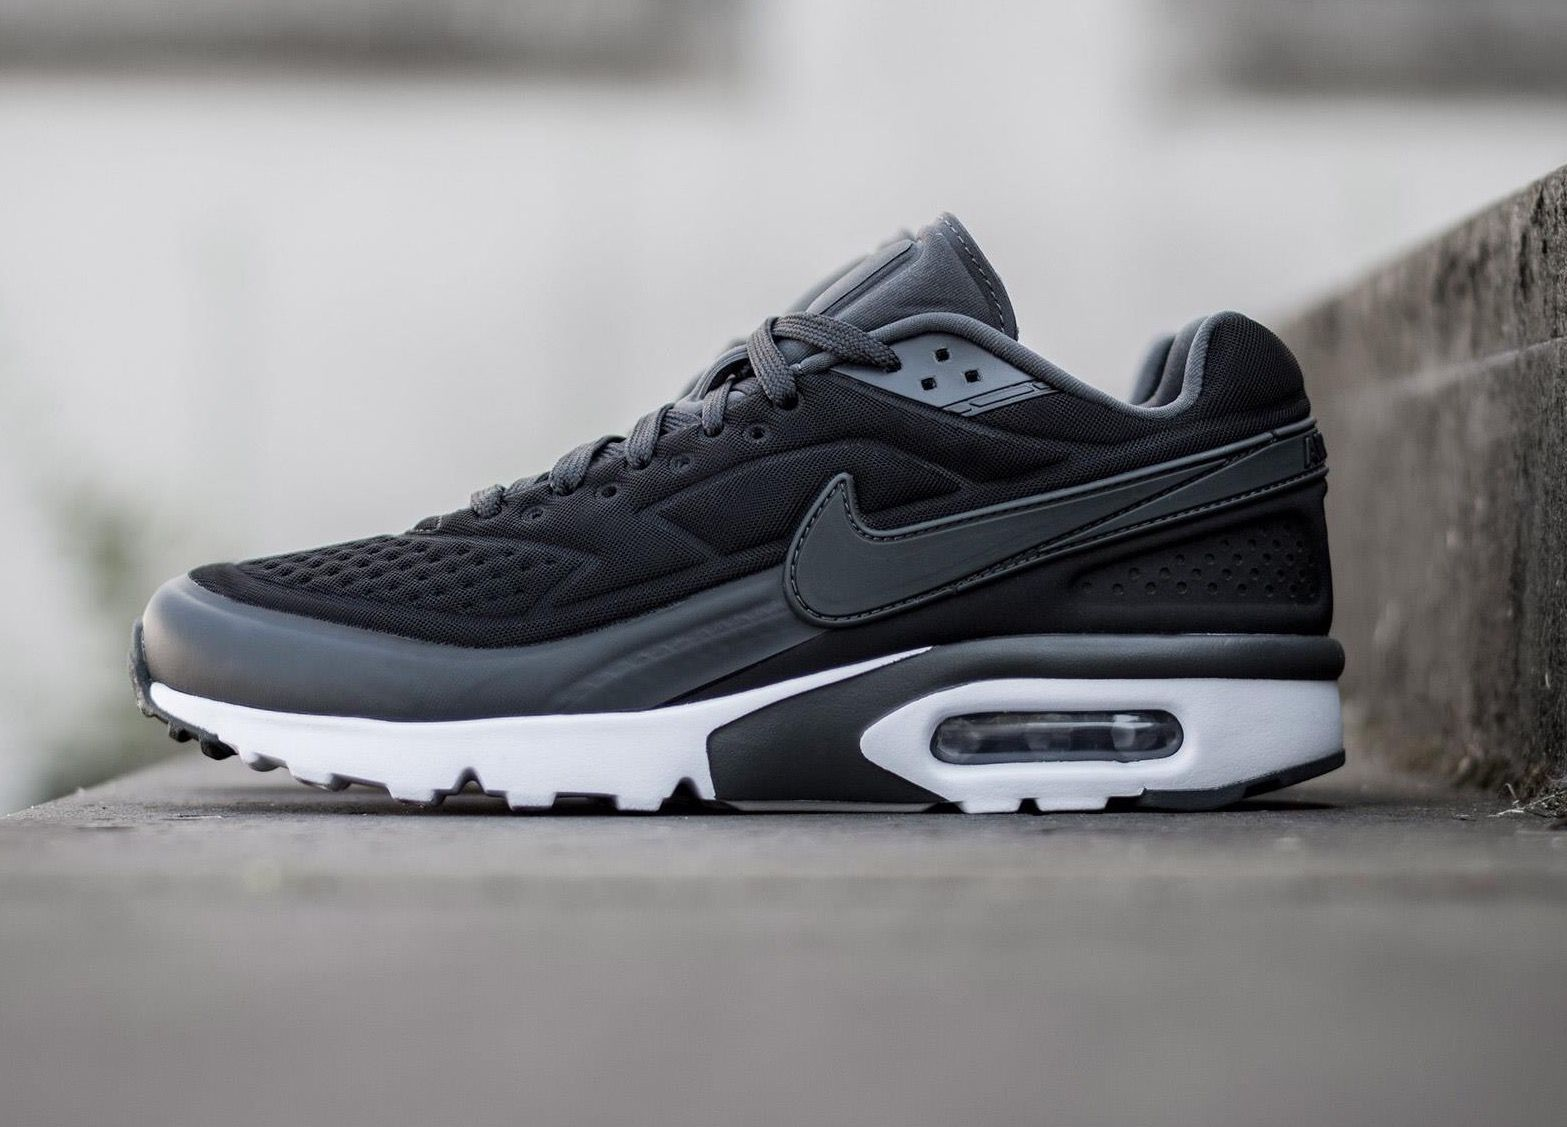 meilleure sélection 25073 4916f Nike Air Classic BW Ultra: Black/Grey | shoes in 2019 | Nike ...